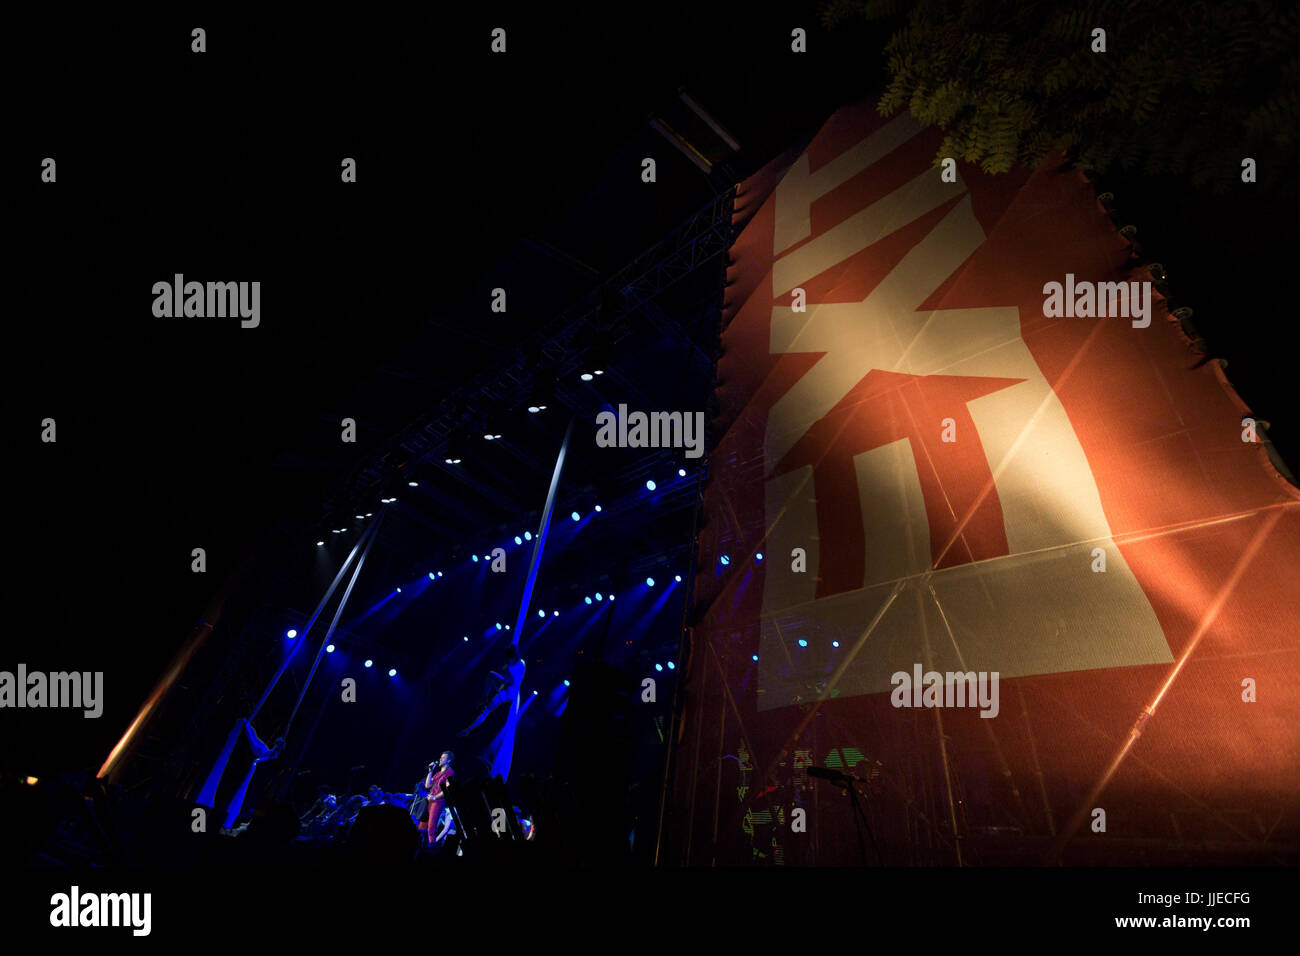 NOVI SAD, SERBIA - JULY 6, 2017: Main stage of the2017 edition of the Exit Festival with its logo on foreground - Stock Image